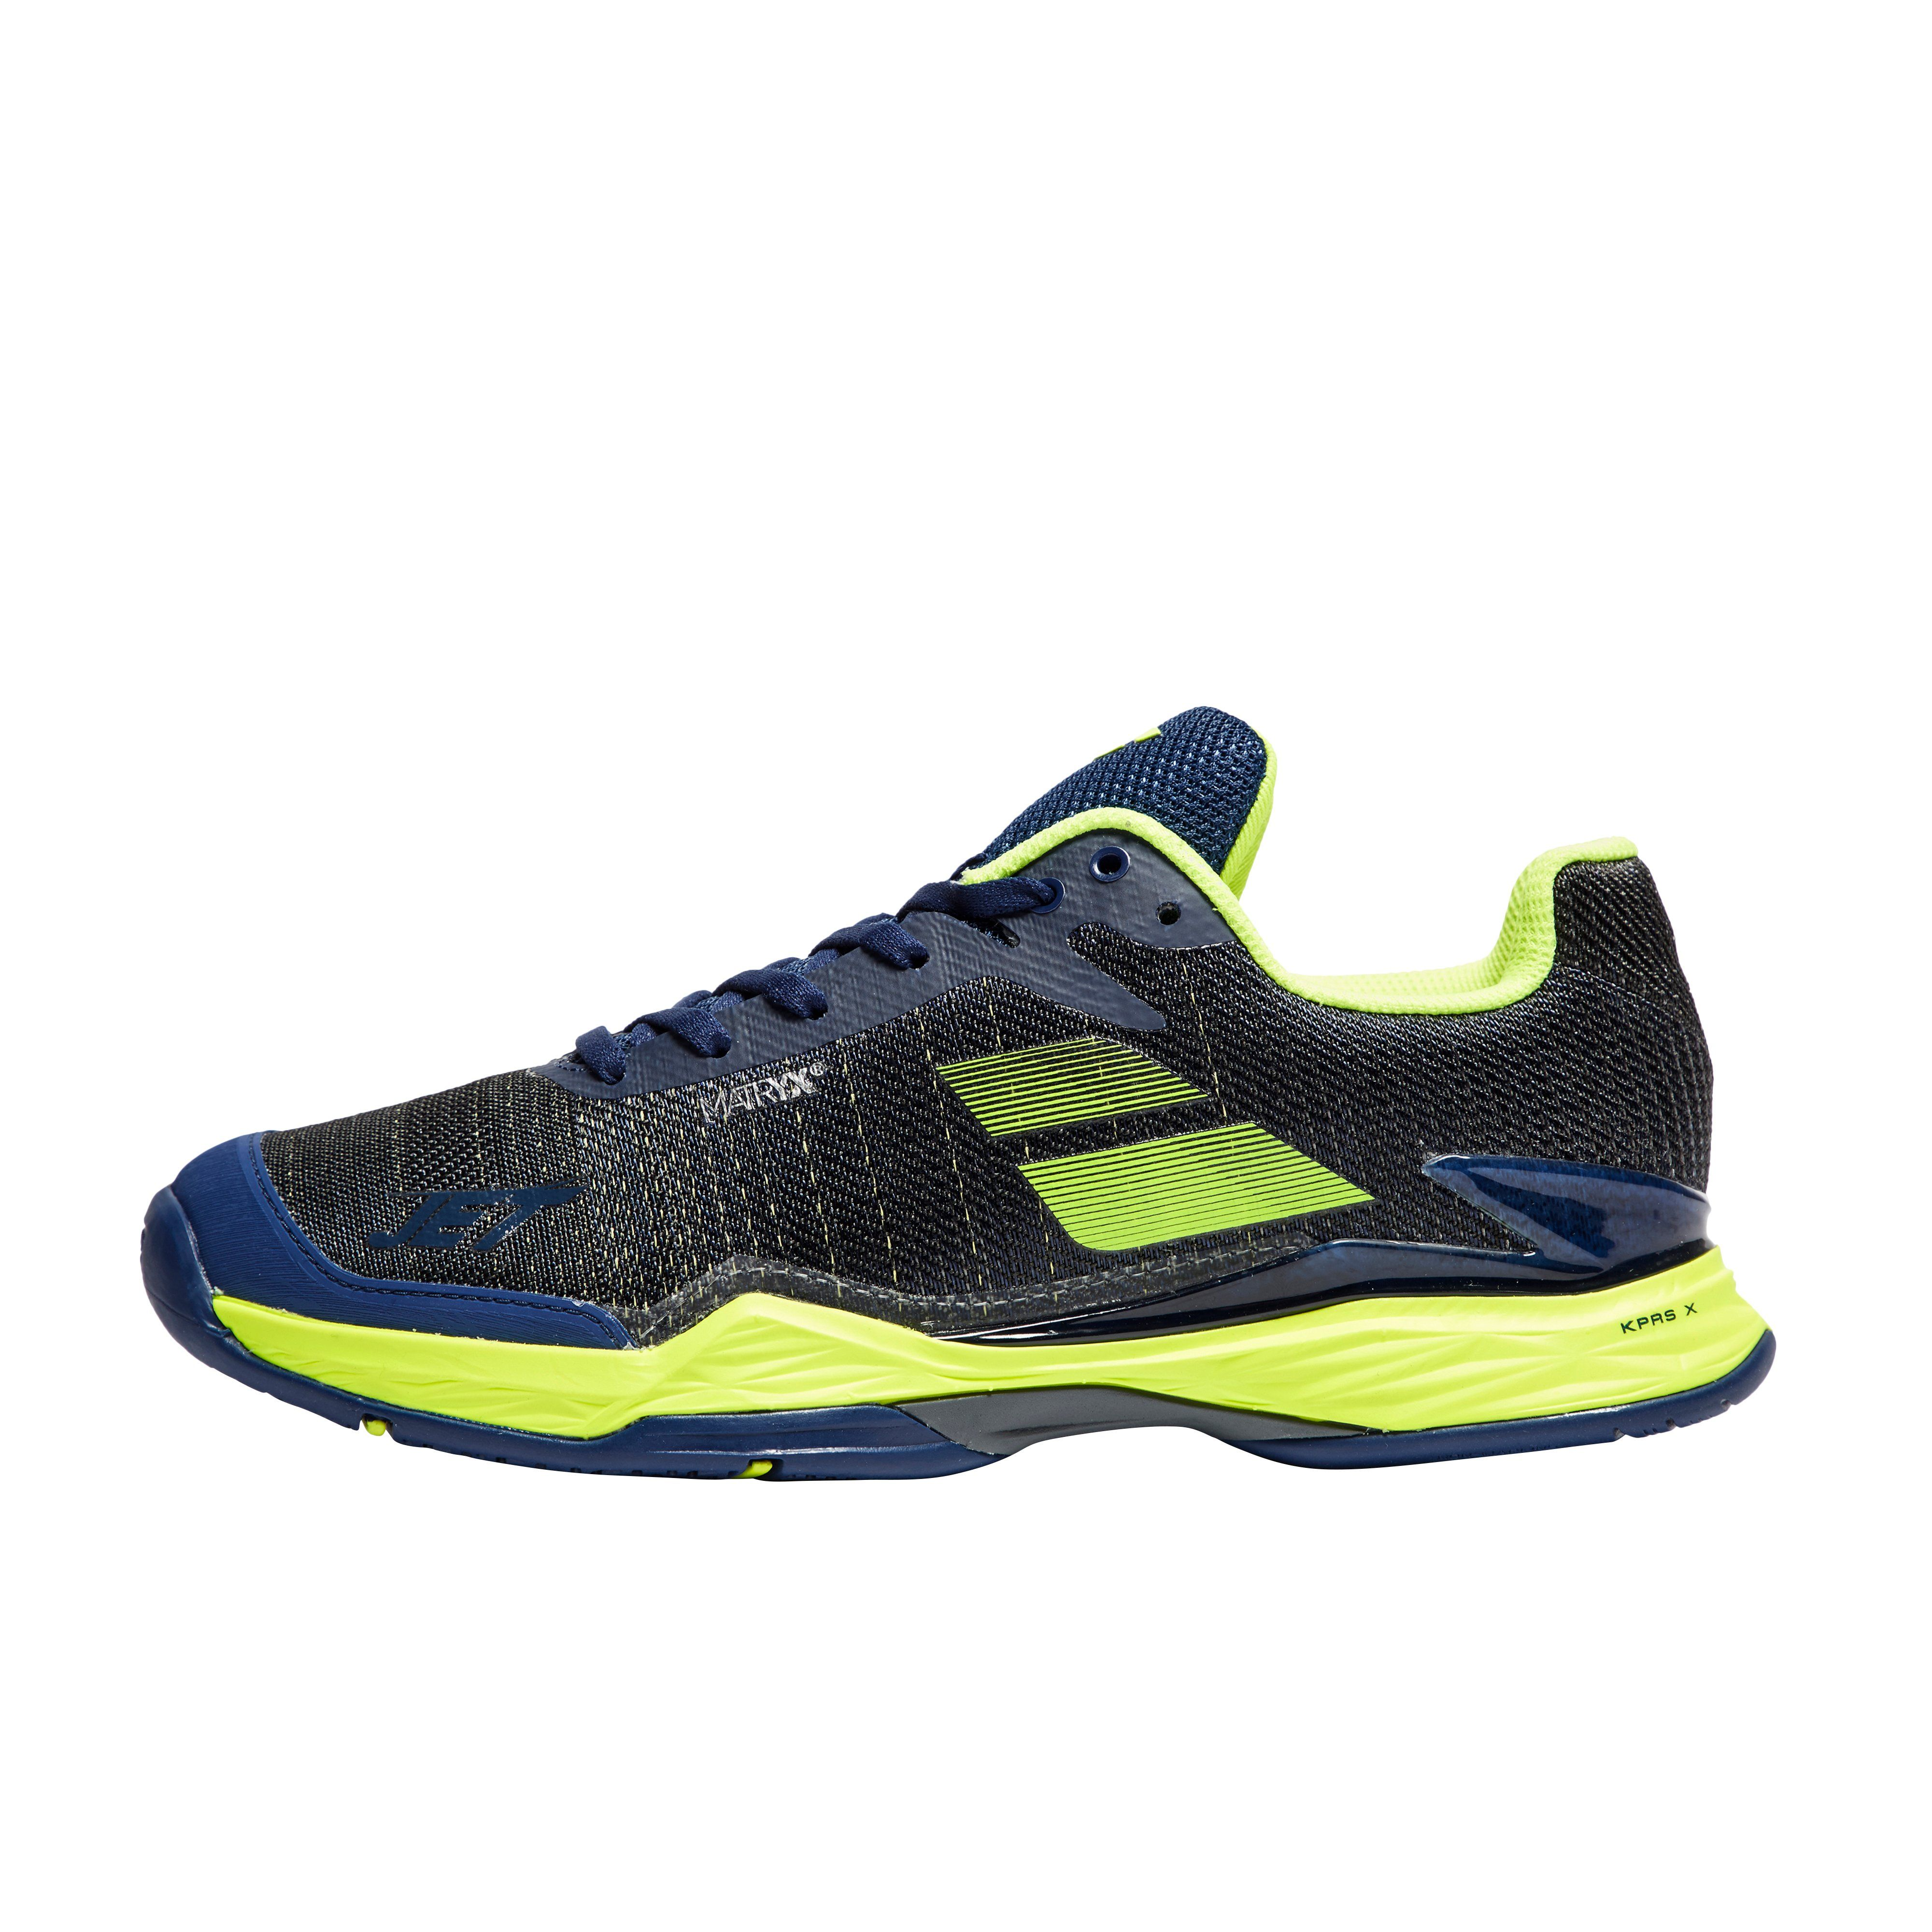 Babolat Jet Mach II Men's Tennis Shoes